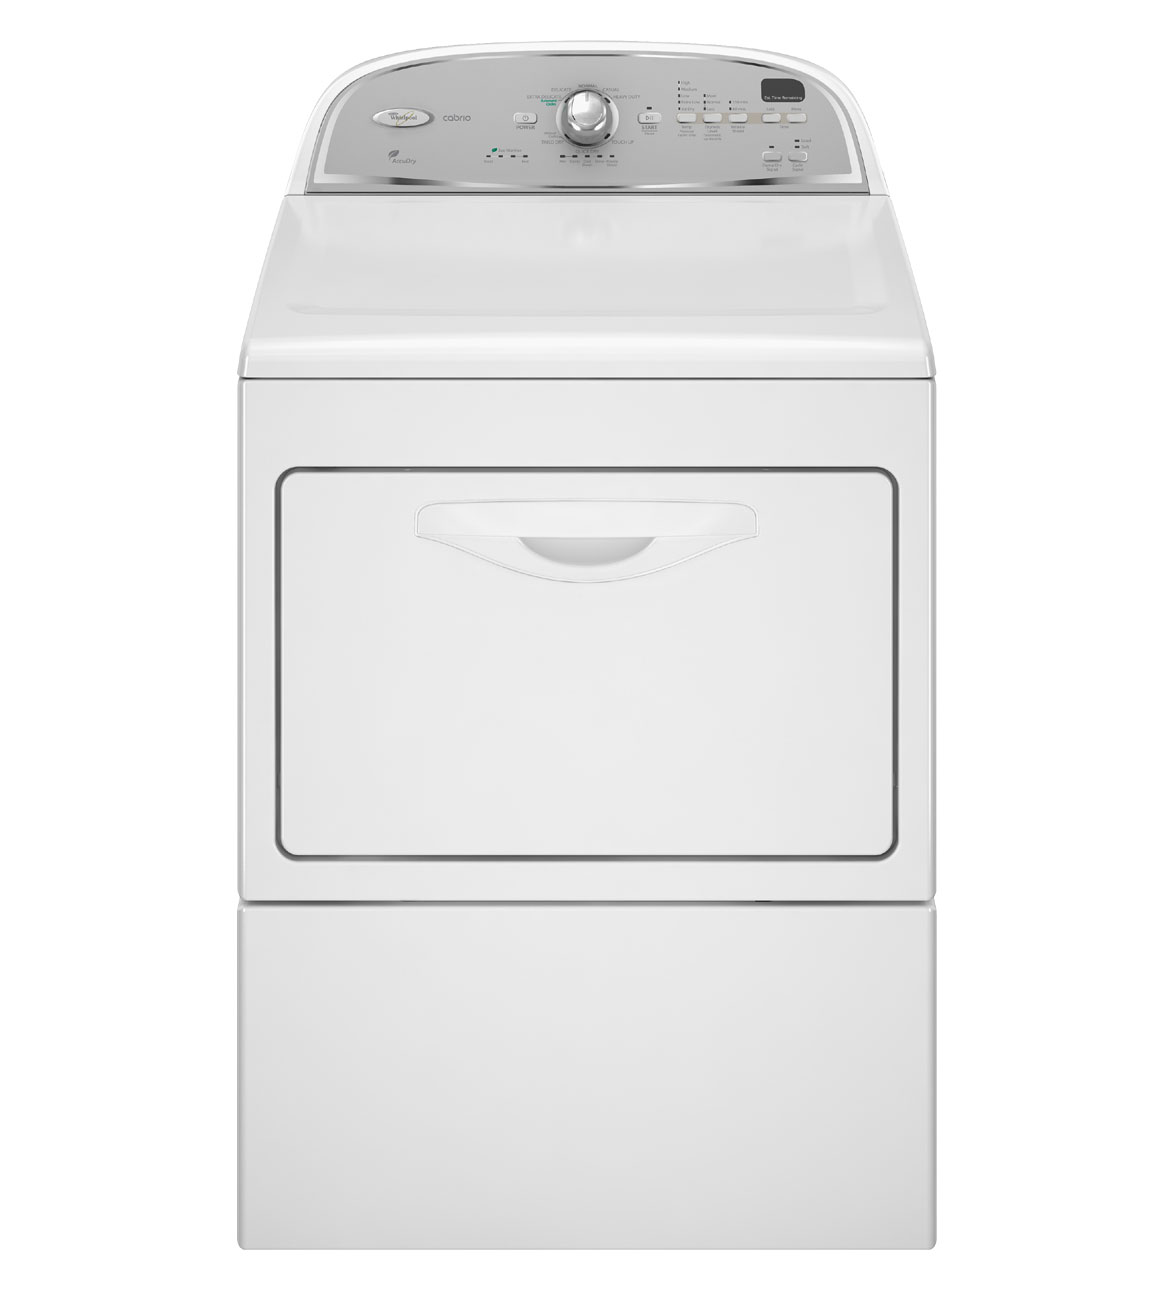 Whirlpool Cabrio 7.4 cu. ft. Electric Dryer in White (Model: WED5600XW) - Reviews of Top 11 Top Load Washers